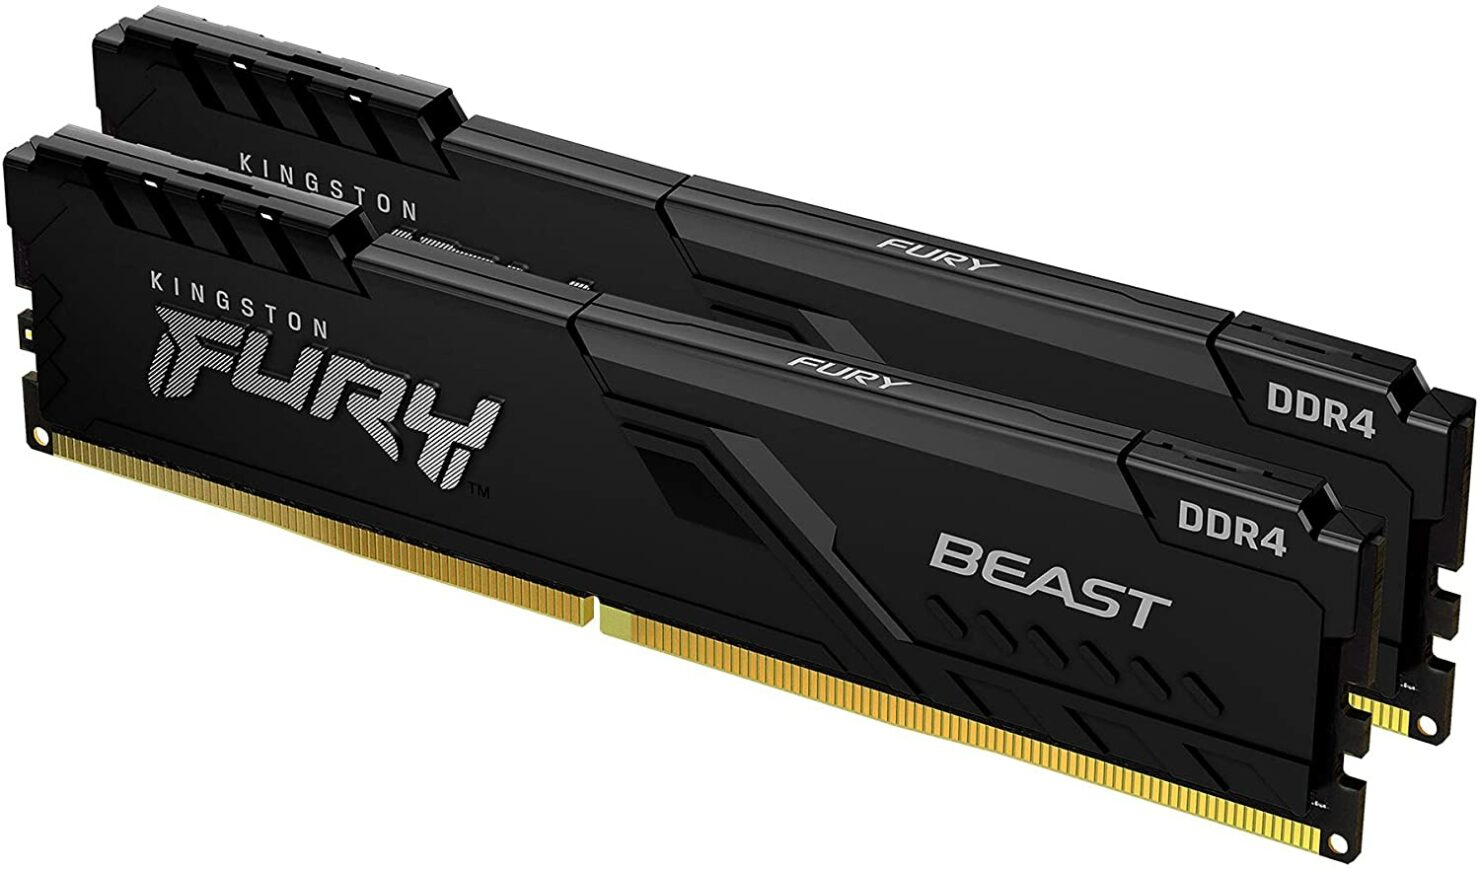 Save up to 40 Percent on Various Gaming RAM for Desktops and Laptops